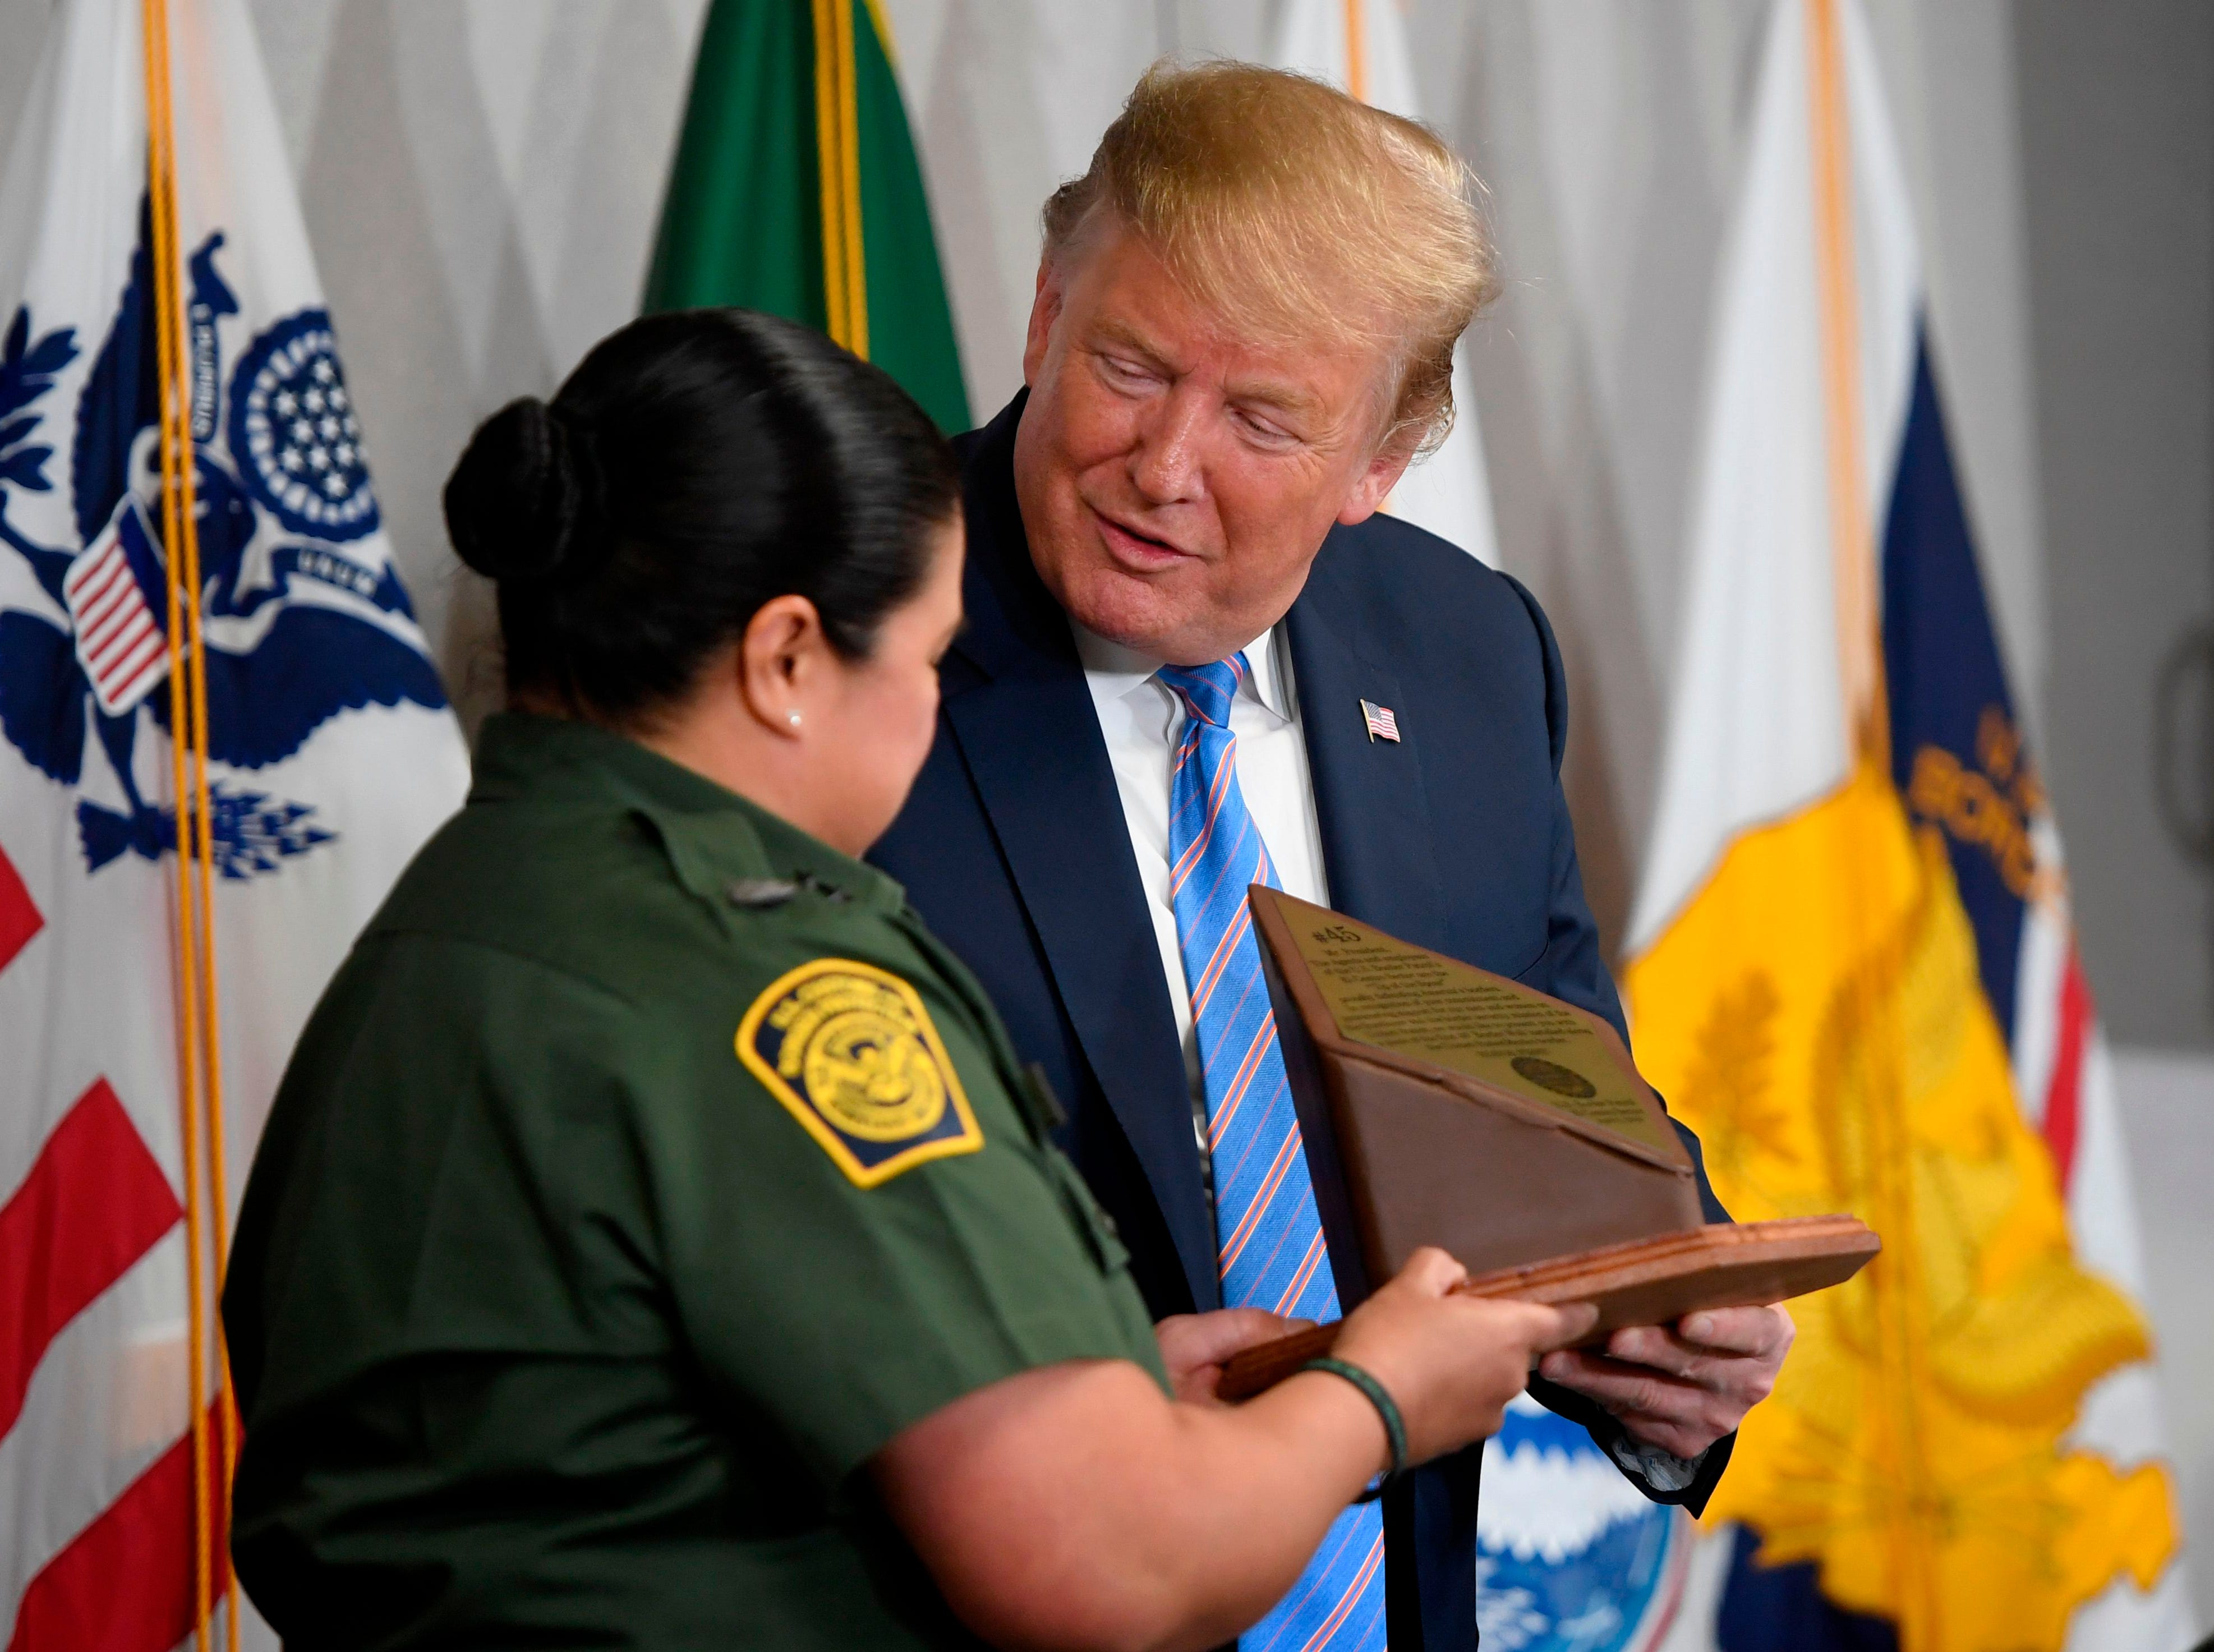 President Donald Trump is given a piece of the border wall from Customs and Border Patrol Chief Patrol Agent Gloria Chavez during a roundtable on immigration and border security at the US Border Patrol Calexico Station in Calexico, California, April 5, 2019.